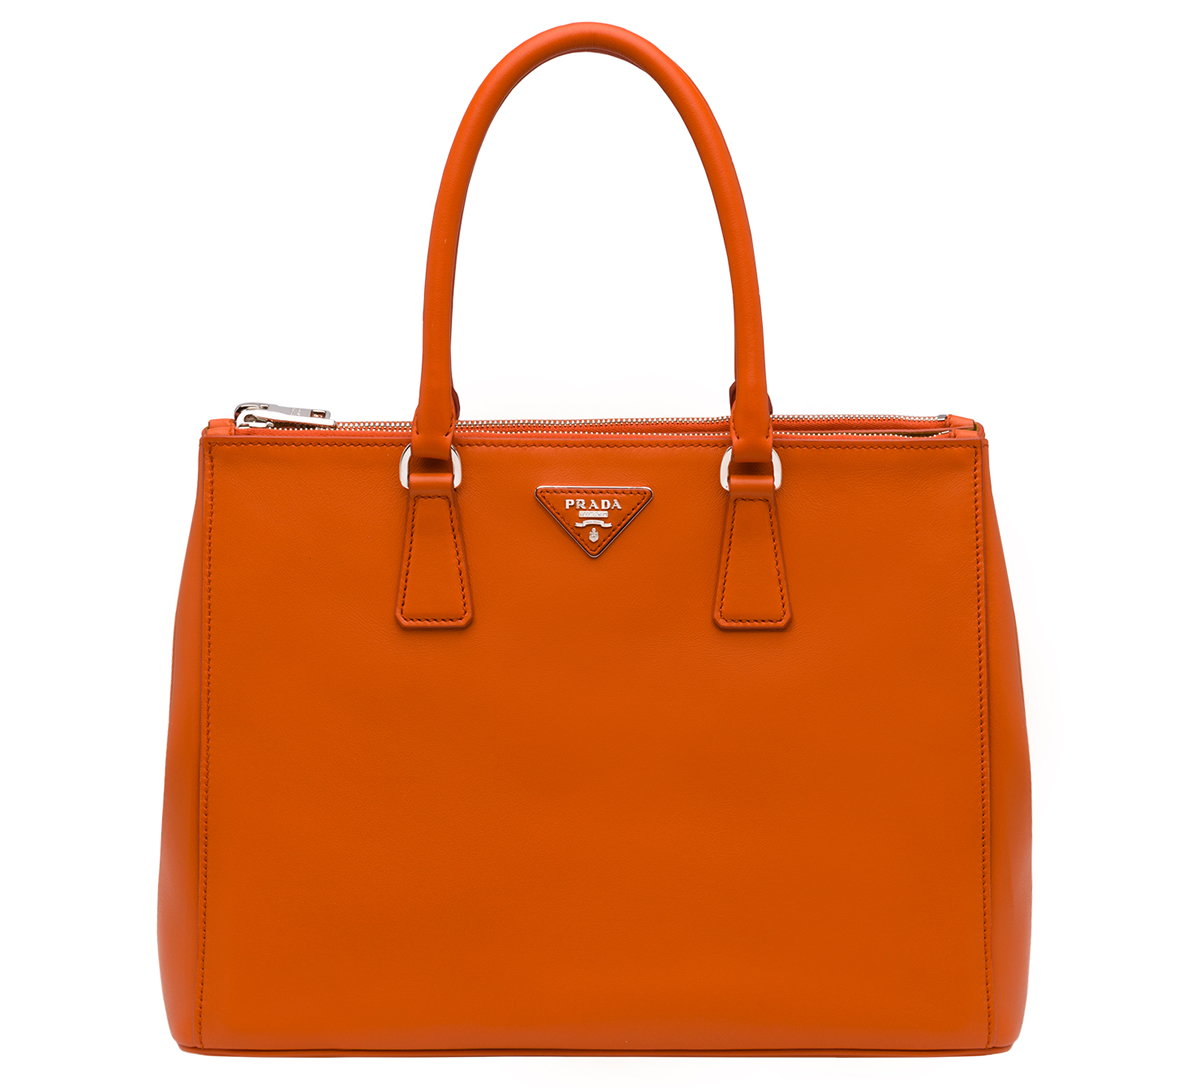 29eb8ac0df0b The New Prada Galleria Bag in City Calf - PurseBlog